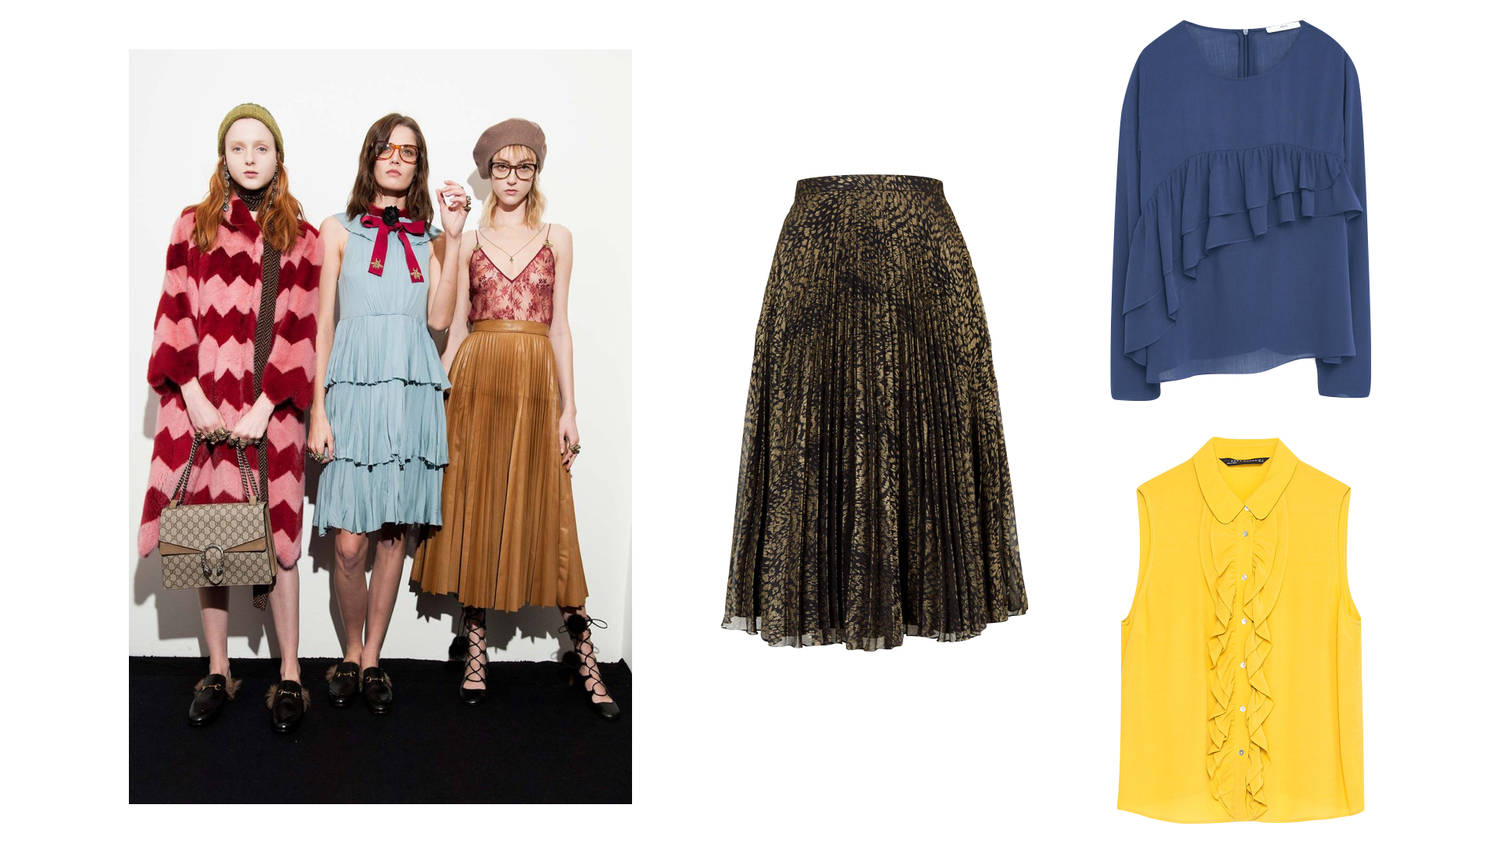 70c2a0bfc5a7 Topshop animal print pleated midi skirt was £60 now £15   Mango decorative  ruffle blouse was £39.99 now £19.99   Zara frilly blouse was £29.99 now  £9.99